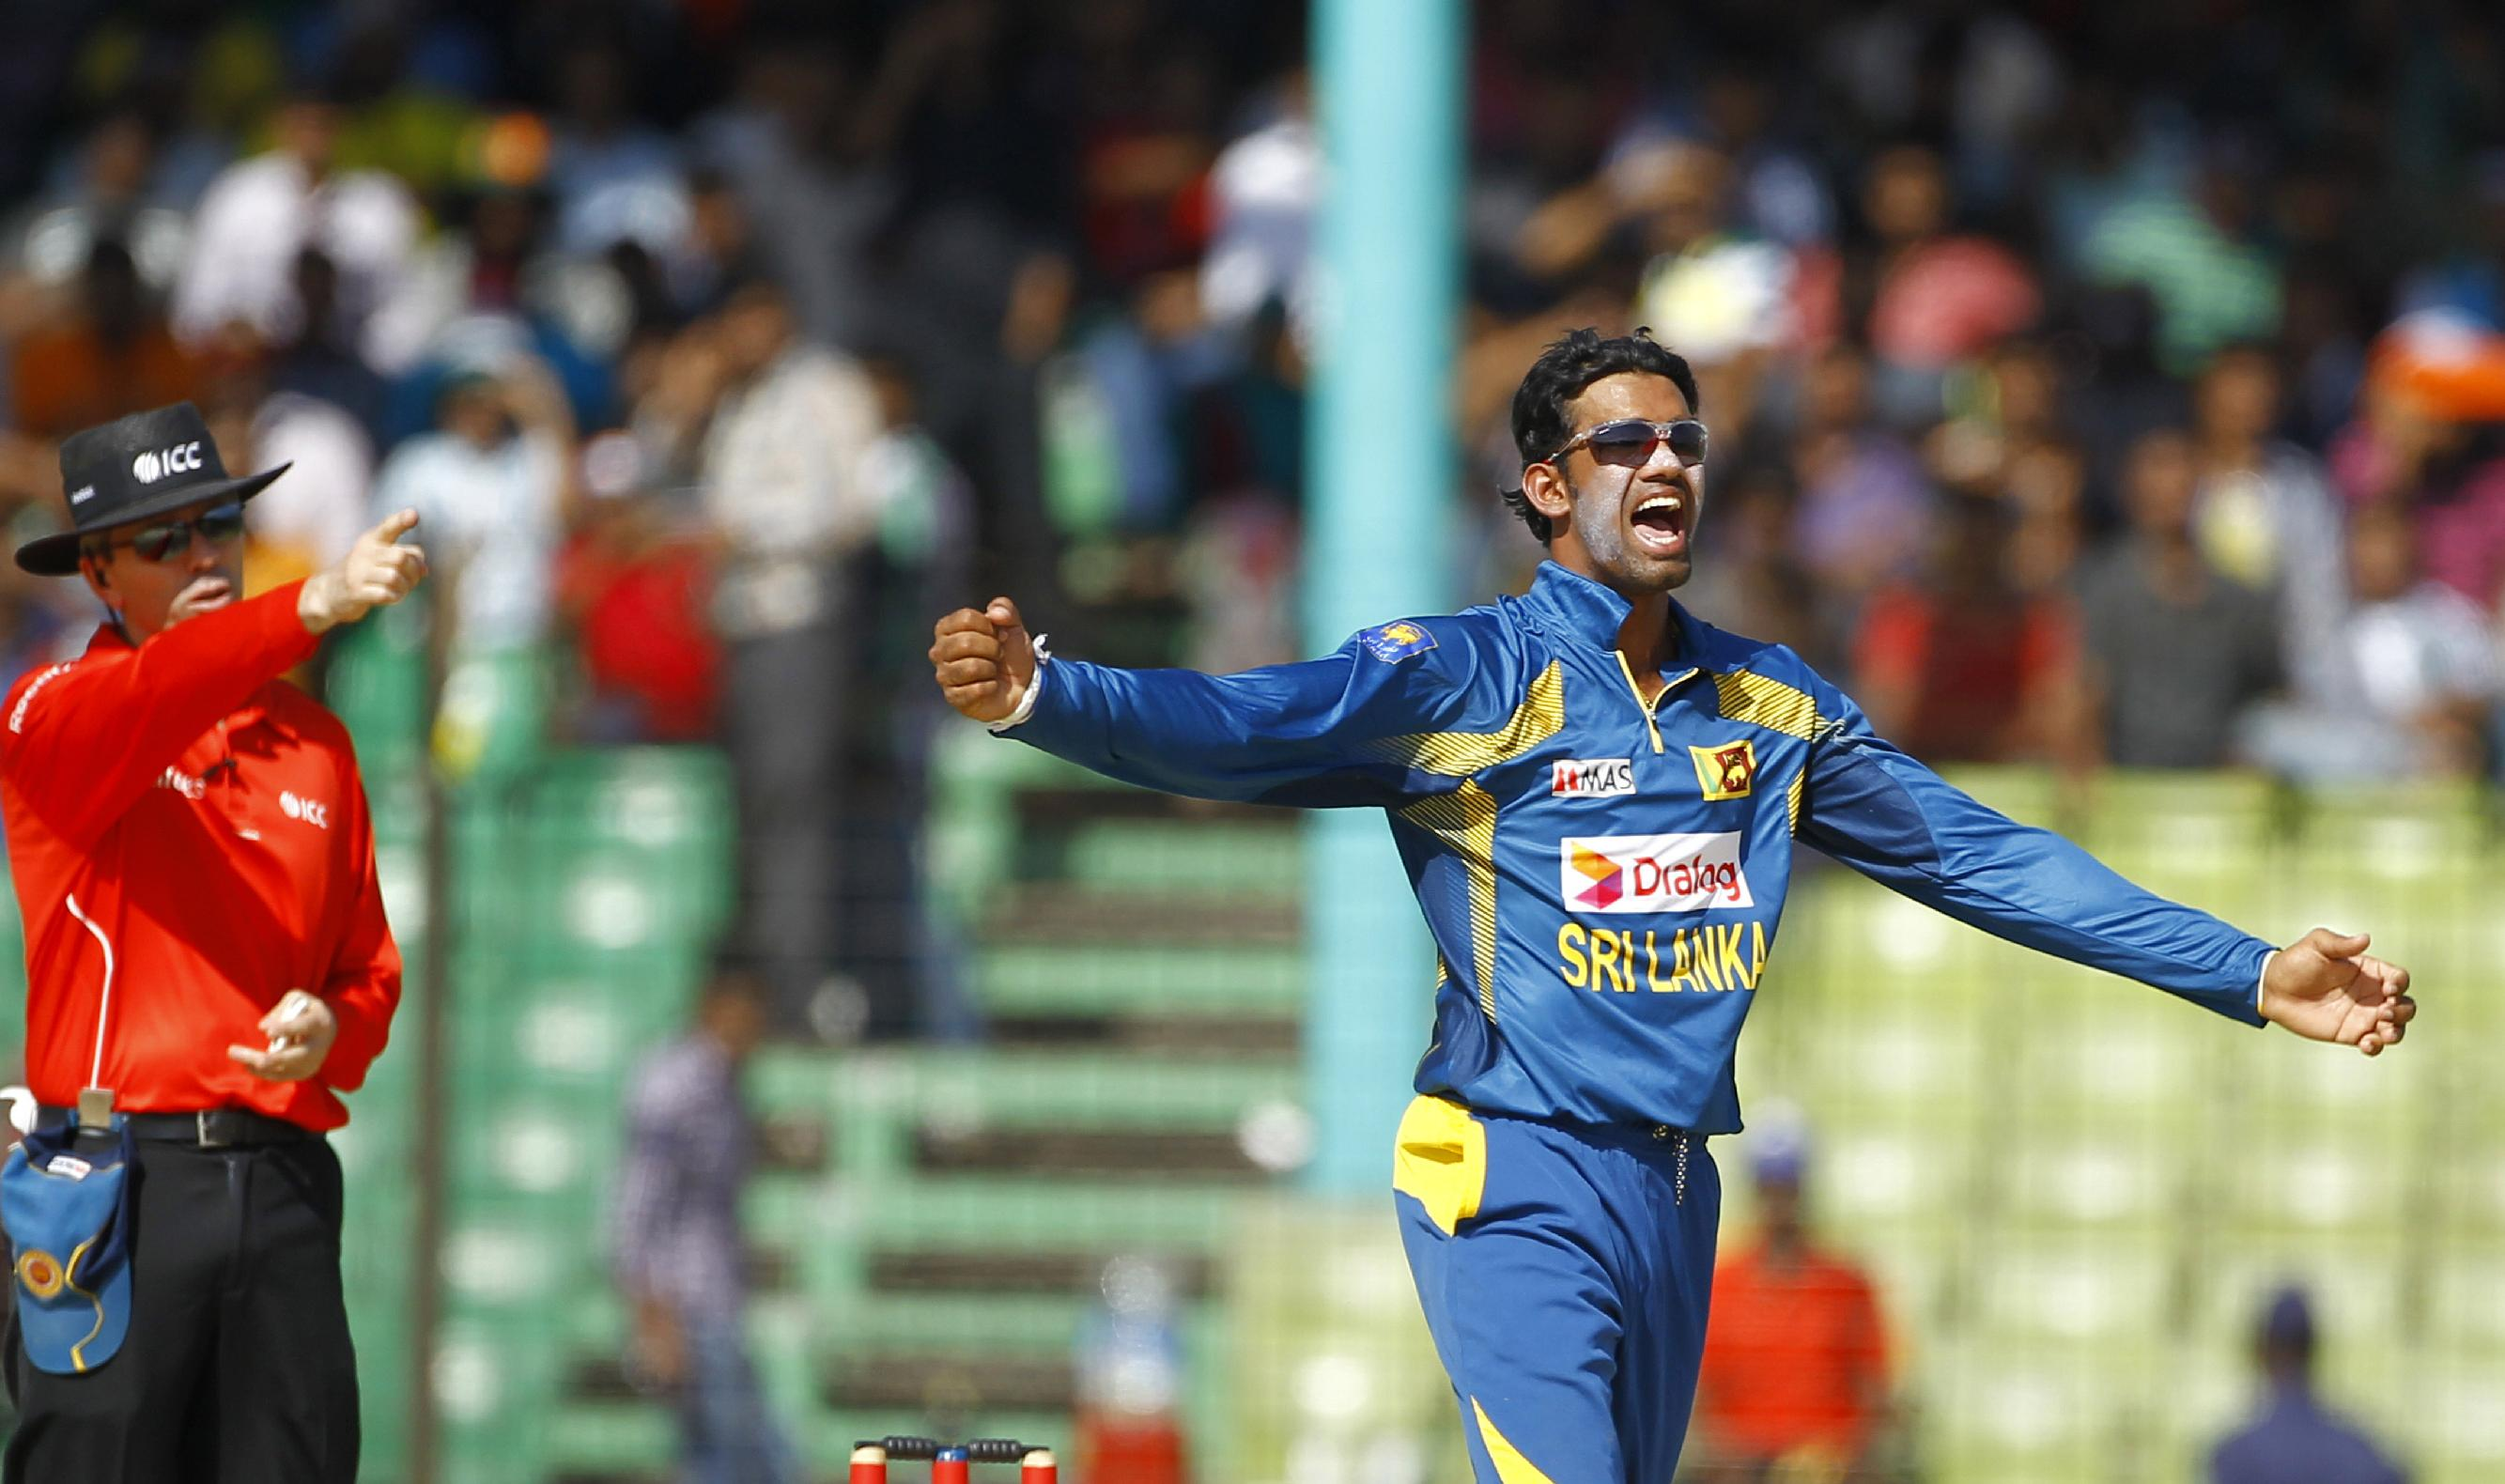 Sri Lanka's Sachithra Senanayake, right, celebrates the wicket of India's Rohit Sharma, unseen, during the Asia Cup one-day international cricket tournament, in Fatullah, near Dhaka, Bangladesh, Friday, Feb. 28, 2014